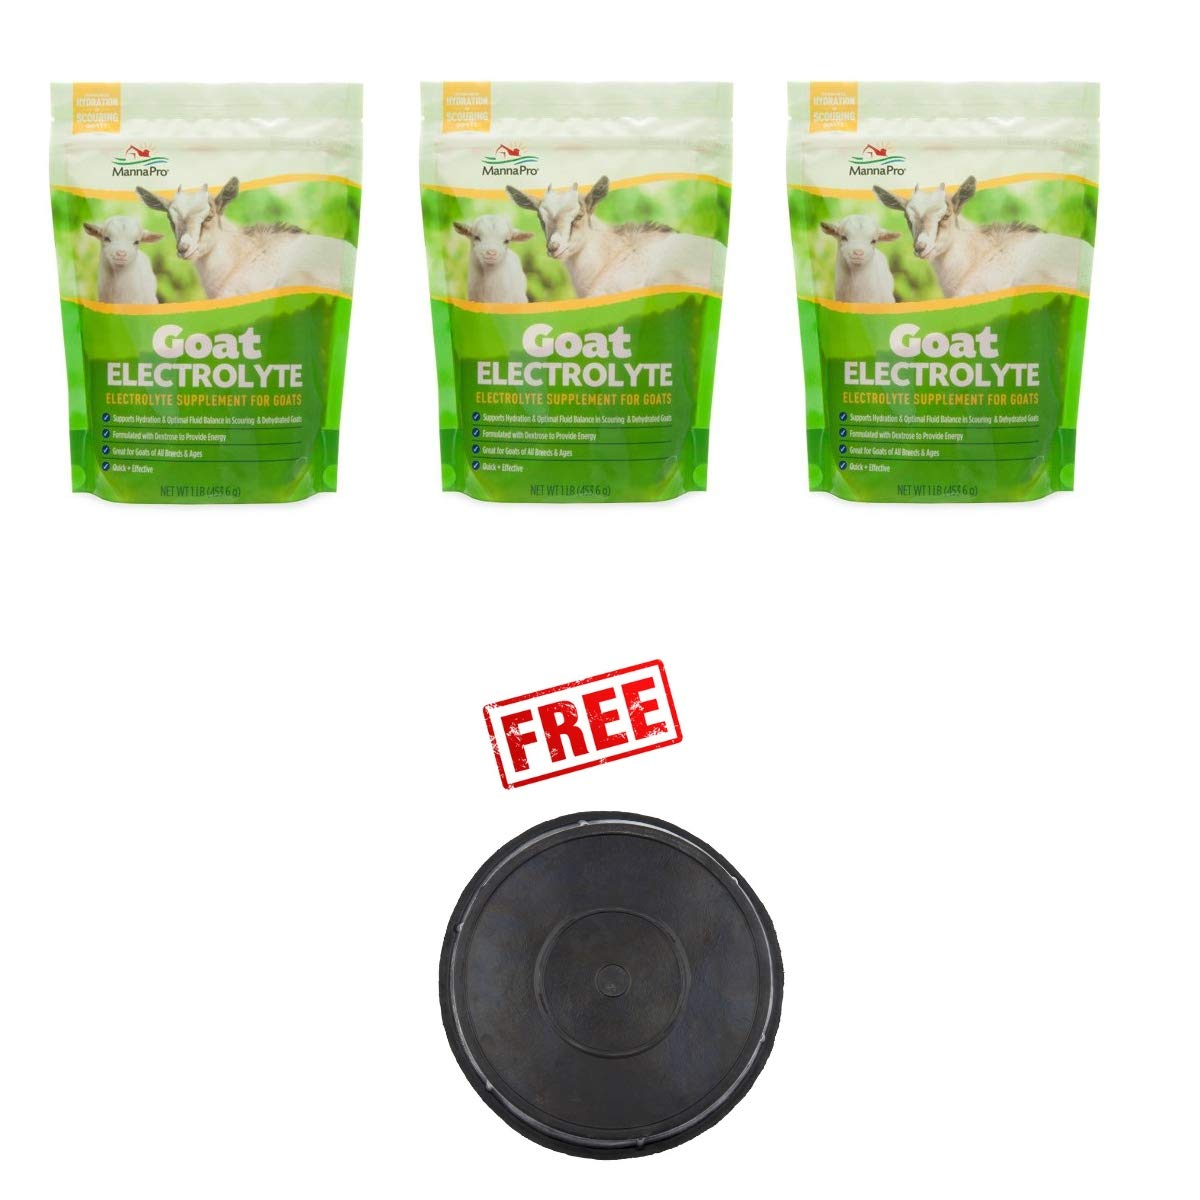 Manna Pro Pack of 3 Goat Electrolyte, 1 Pound, Supplement for Proper Hydration with Free! Buy More, Save More!